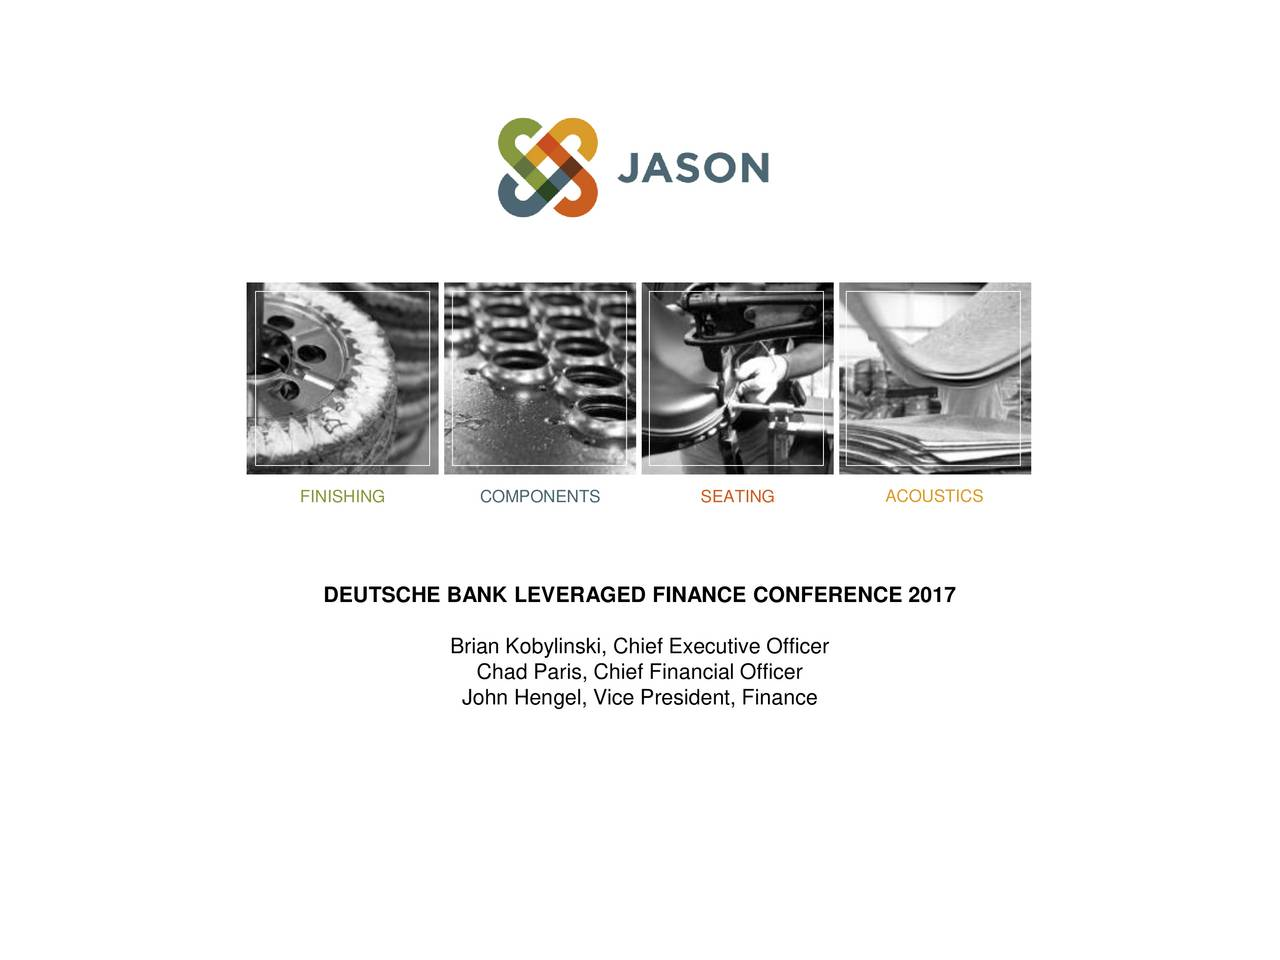 DEUTSCHE BANK LEVERAGED FINANCE CONFERENCE 2017 Brian Kobylinski, Chief Executive Officer Chad Paris, Chief Financial Officer John Hengel, Vice President, Finance